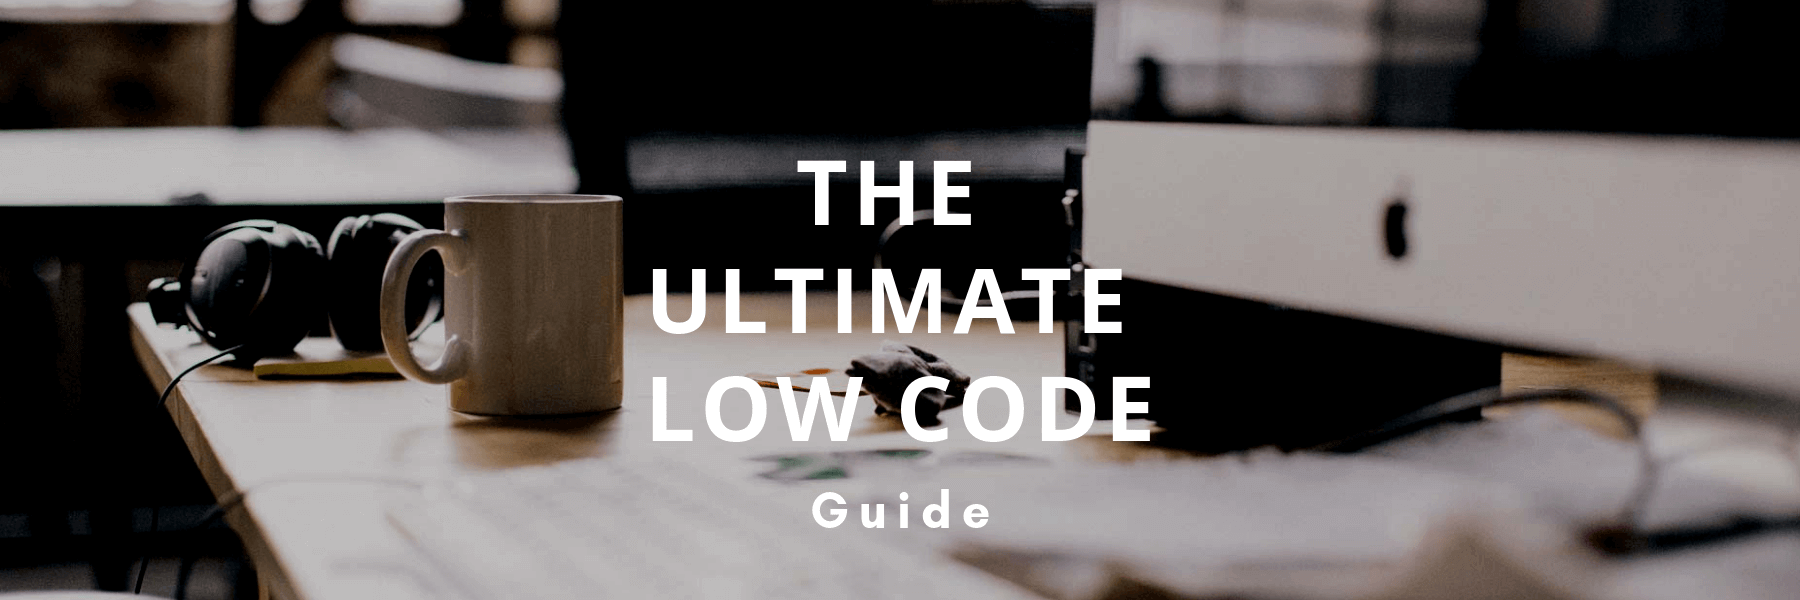 Low Code Guide